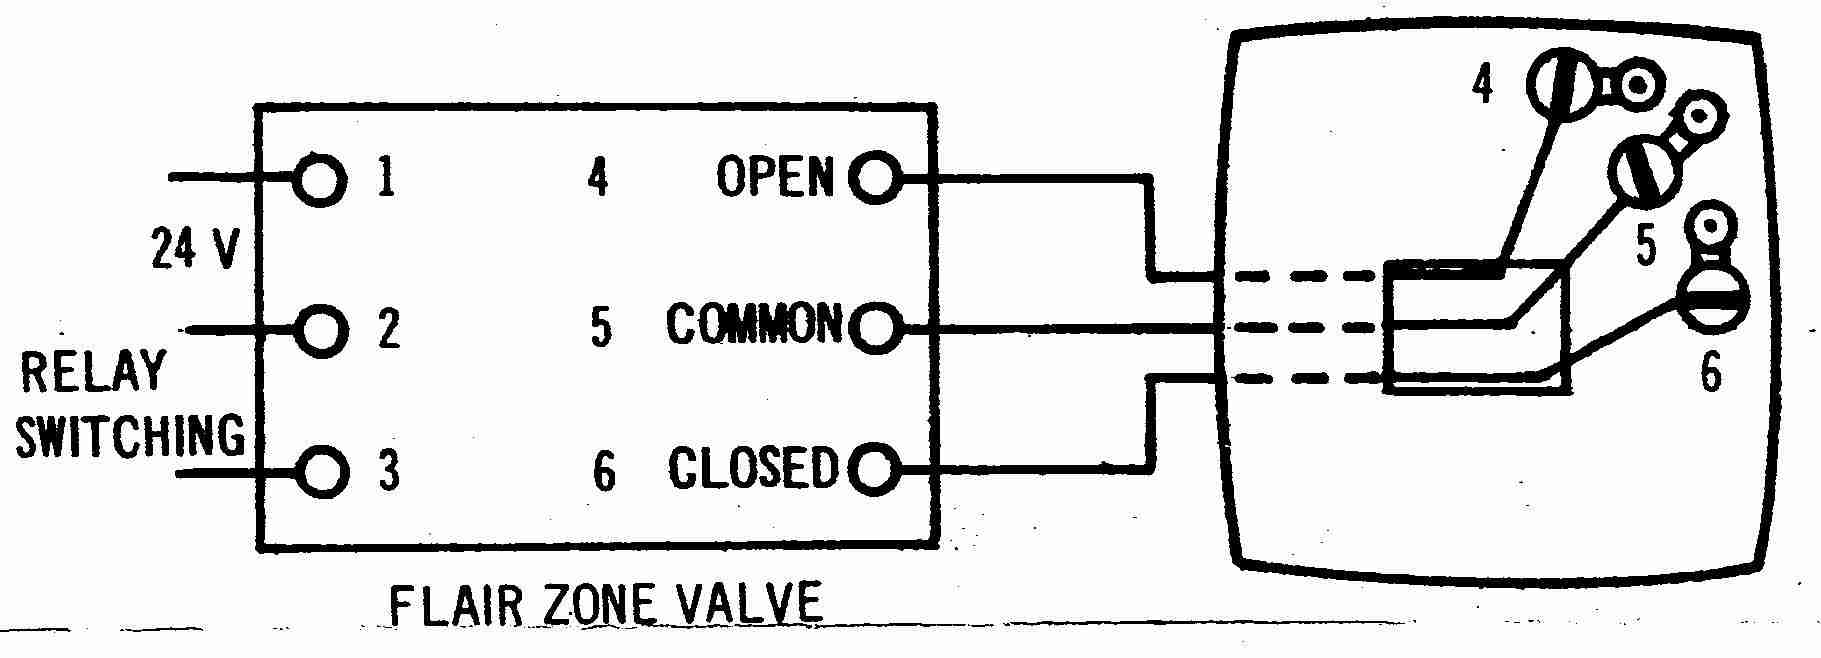 Flair3w_001_DJFc2 room thermostat wiring diagrams for hvac systems honeywell thermostat wiring diagram 5 wire at fashall.co